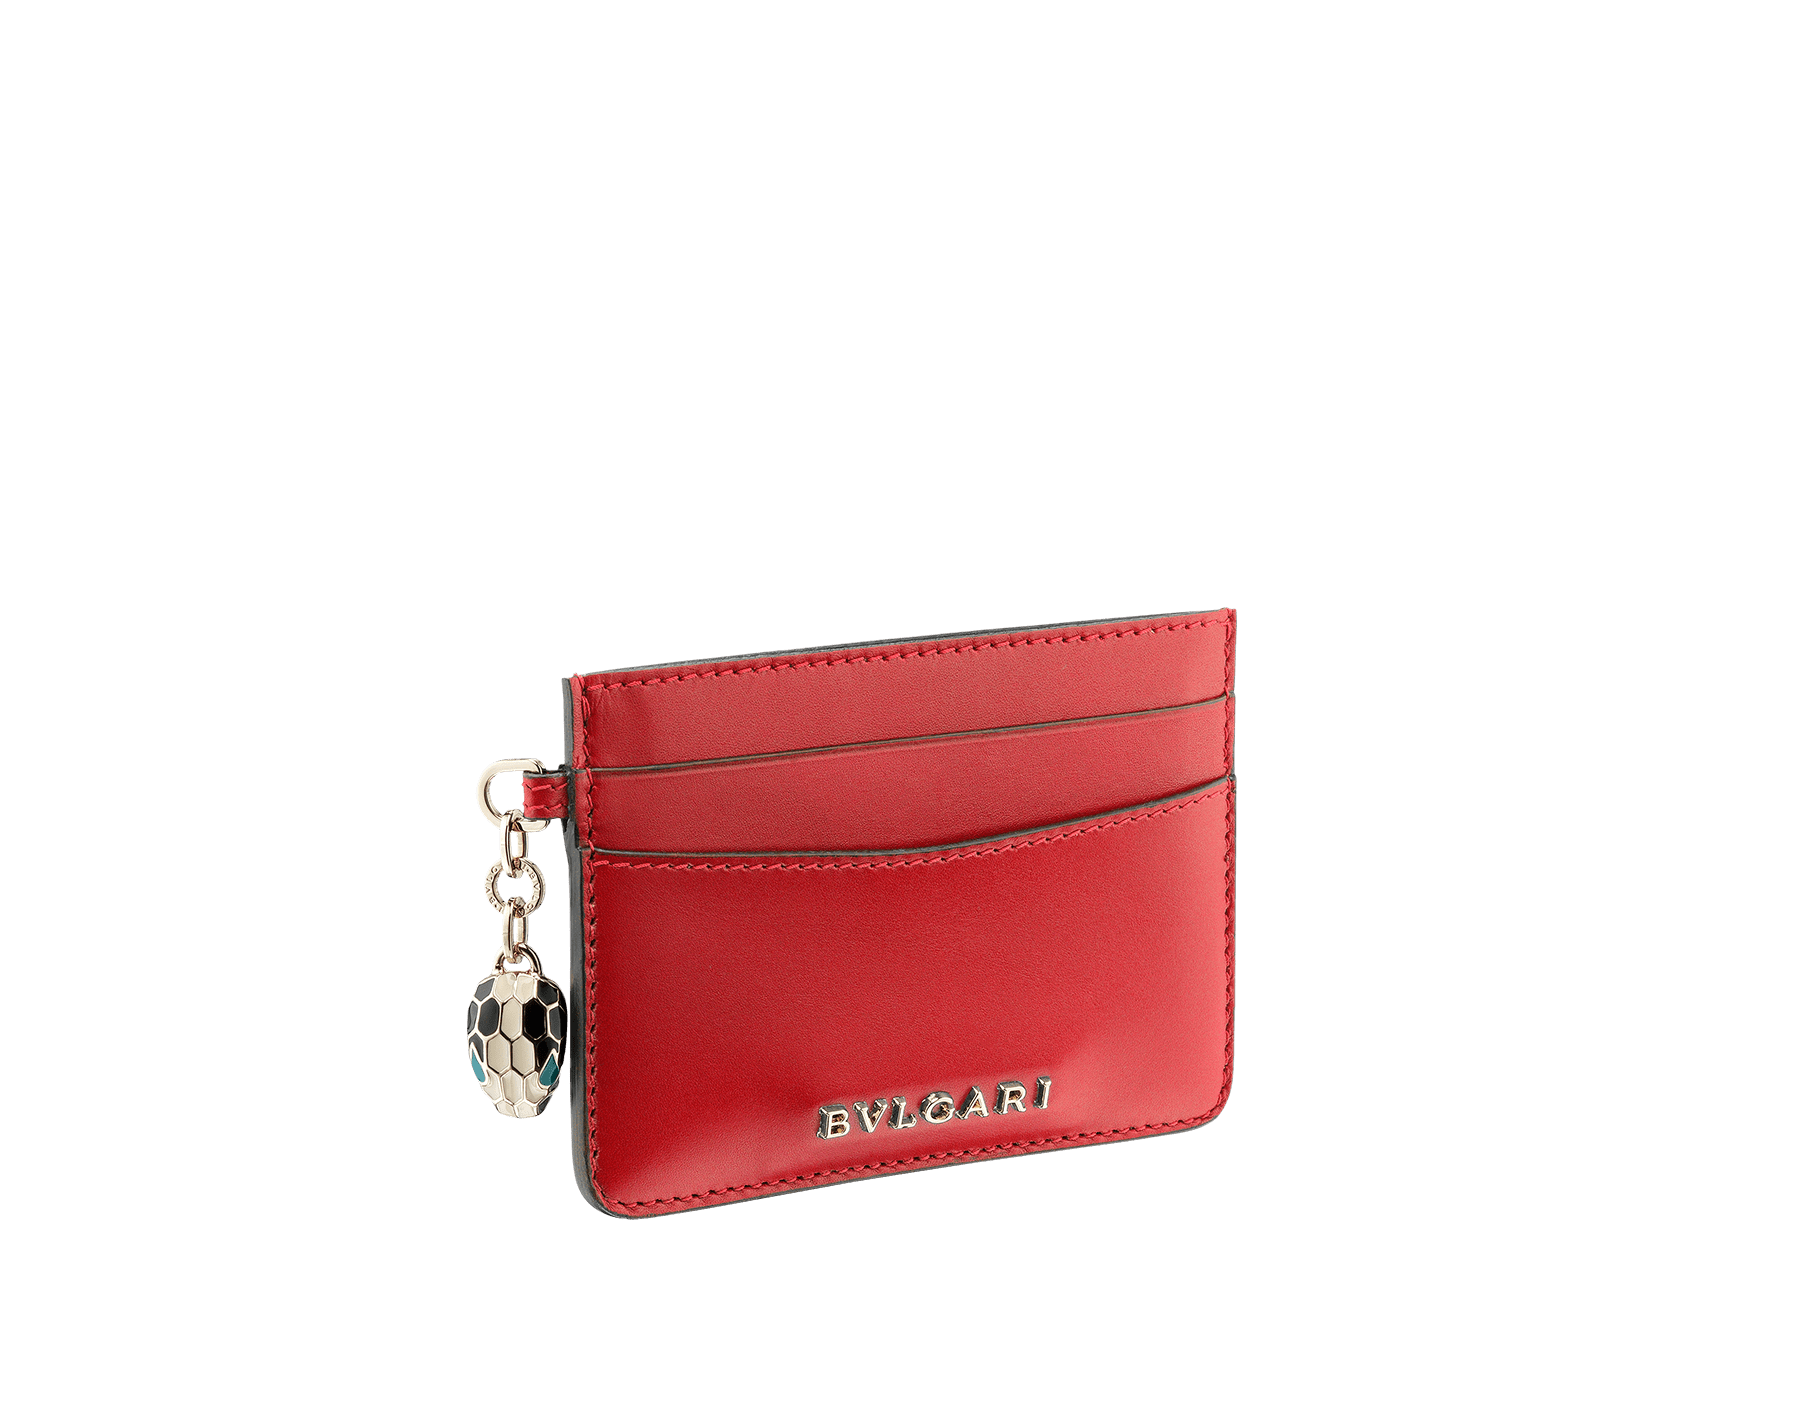 Credit card holder in ruby red and desert quartz calf leather. Serpenti charm in black and white enamel with green malachite enamel eyes and Bulgari logo in metal characters. 282020 image 1